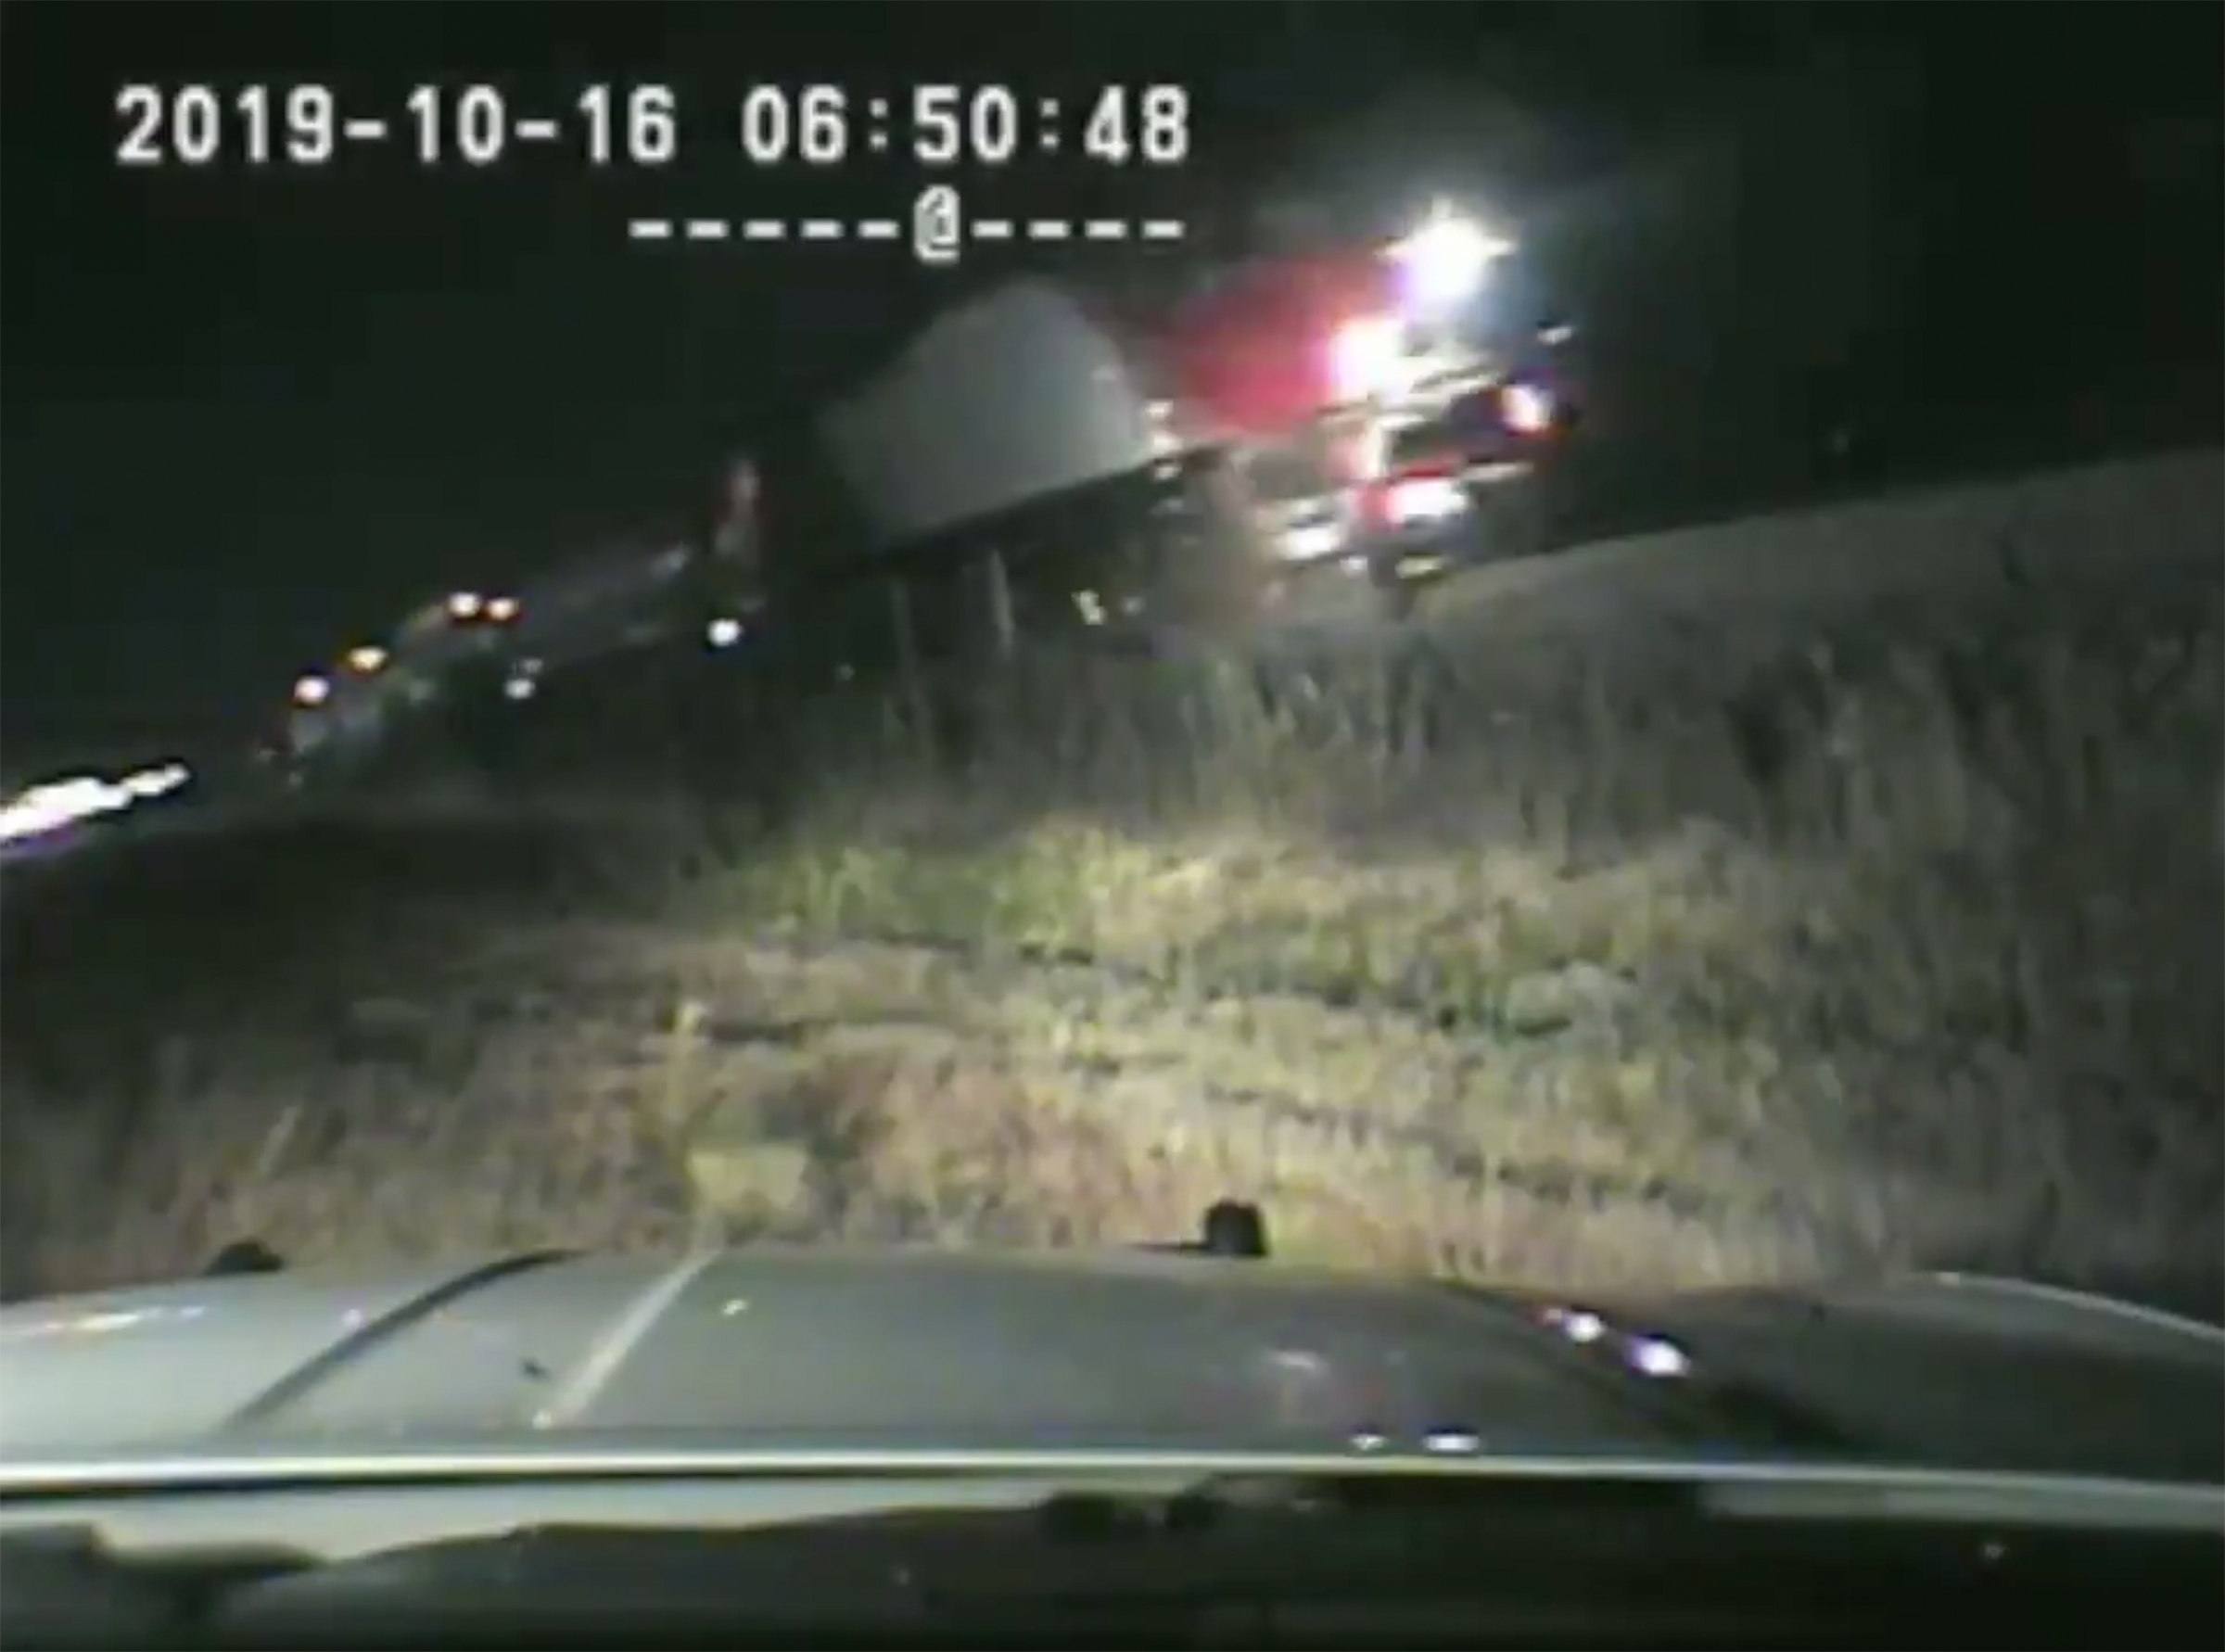 This still frame from a Utah Highway Patrol dashcam shows a FrontRunner train impacting an SUV 1 second after trooper Ruben Correa pulled an unconscious man from the driver's seat on the morning of Wednesday, Oct. 16, 2019 in Centerville.